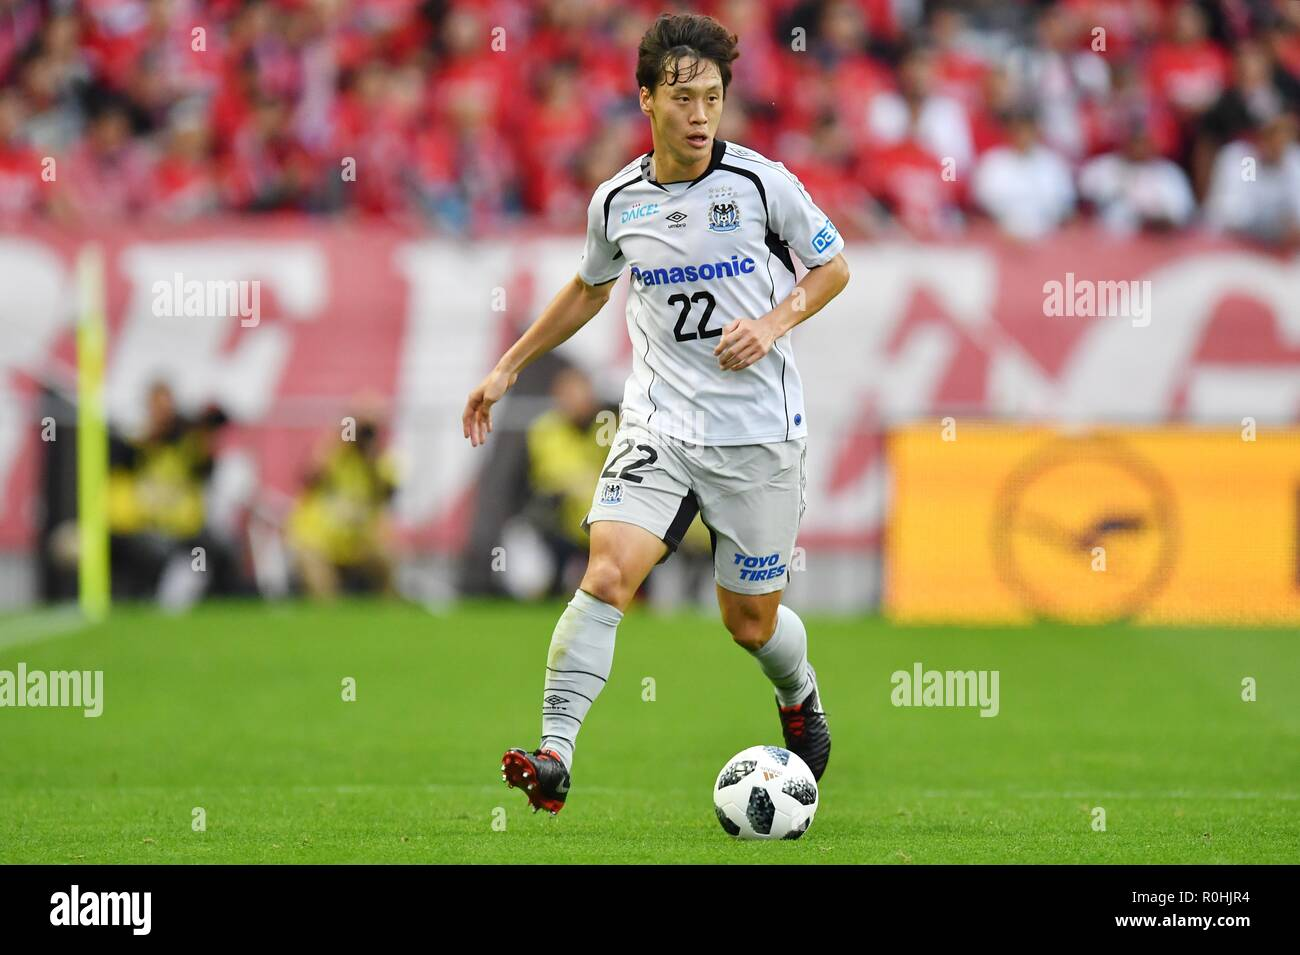 Oh Jae Suk Gamba November 3 2018 Football Soccer 2018 J1 League Match Between Urawa Red Diamonds 1 3 Gamba Osaka At Saitama Stadium 2002 In Saitama Japan Photo By Aflo Stock Photo Alamy